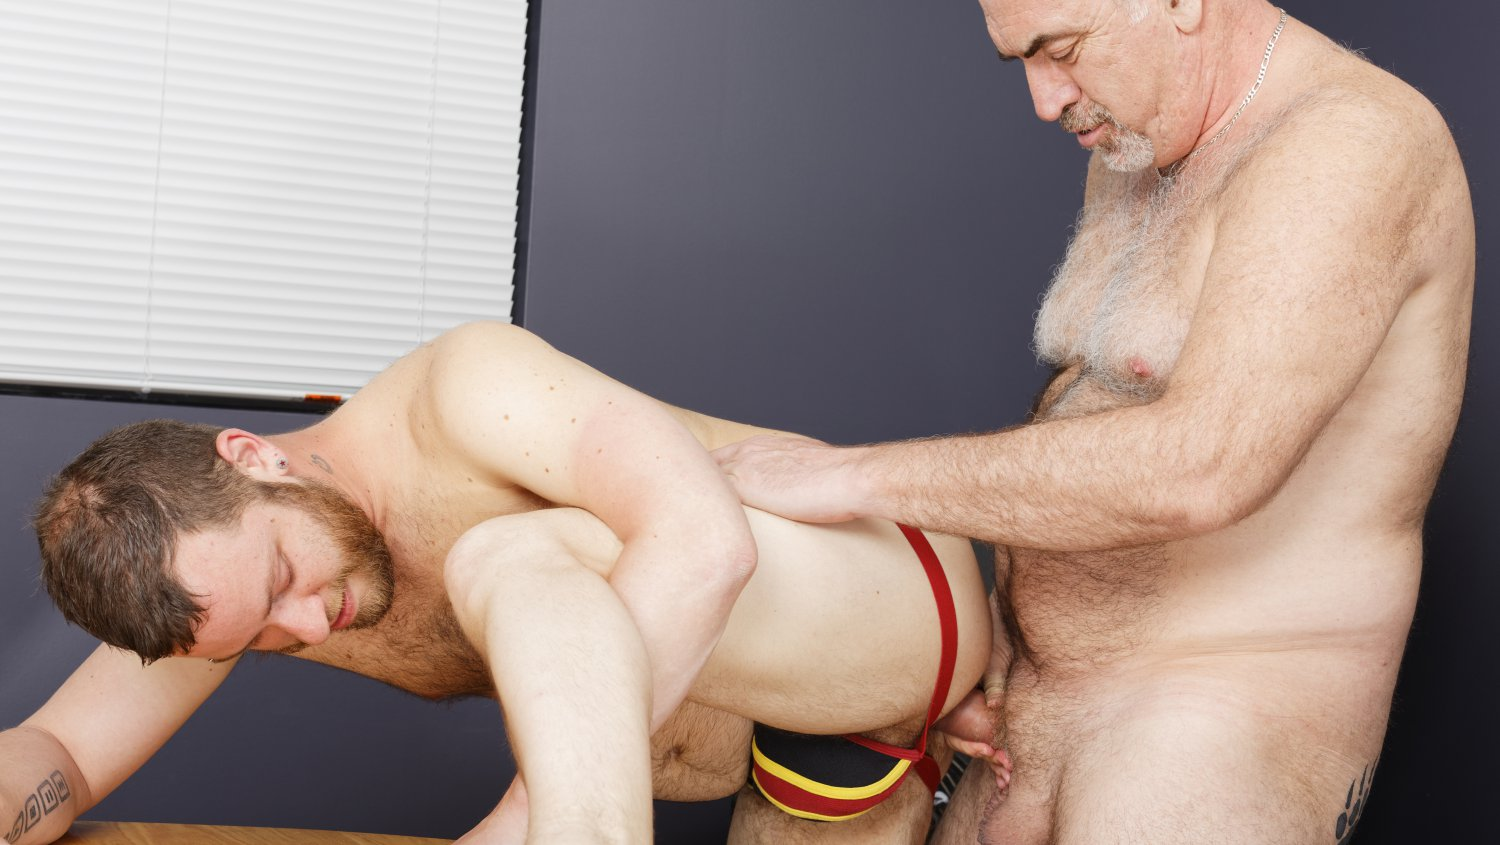 Phil Mehup and Martin Pe - BearFilms watch free porn on your cell